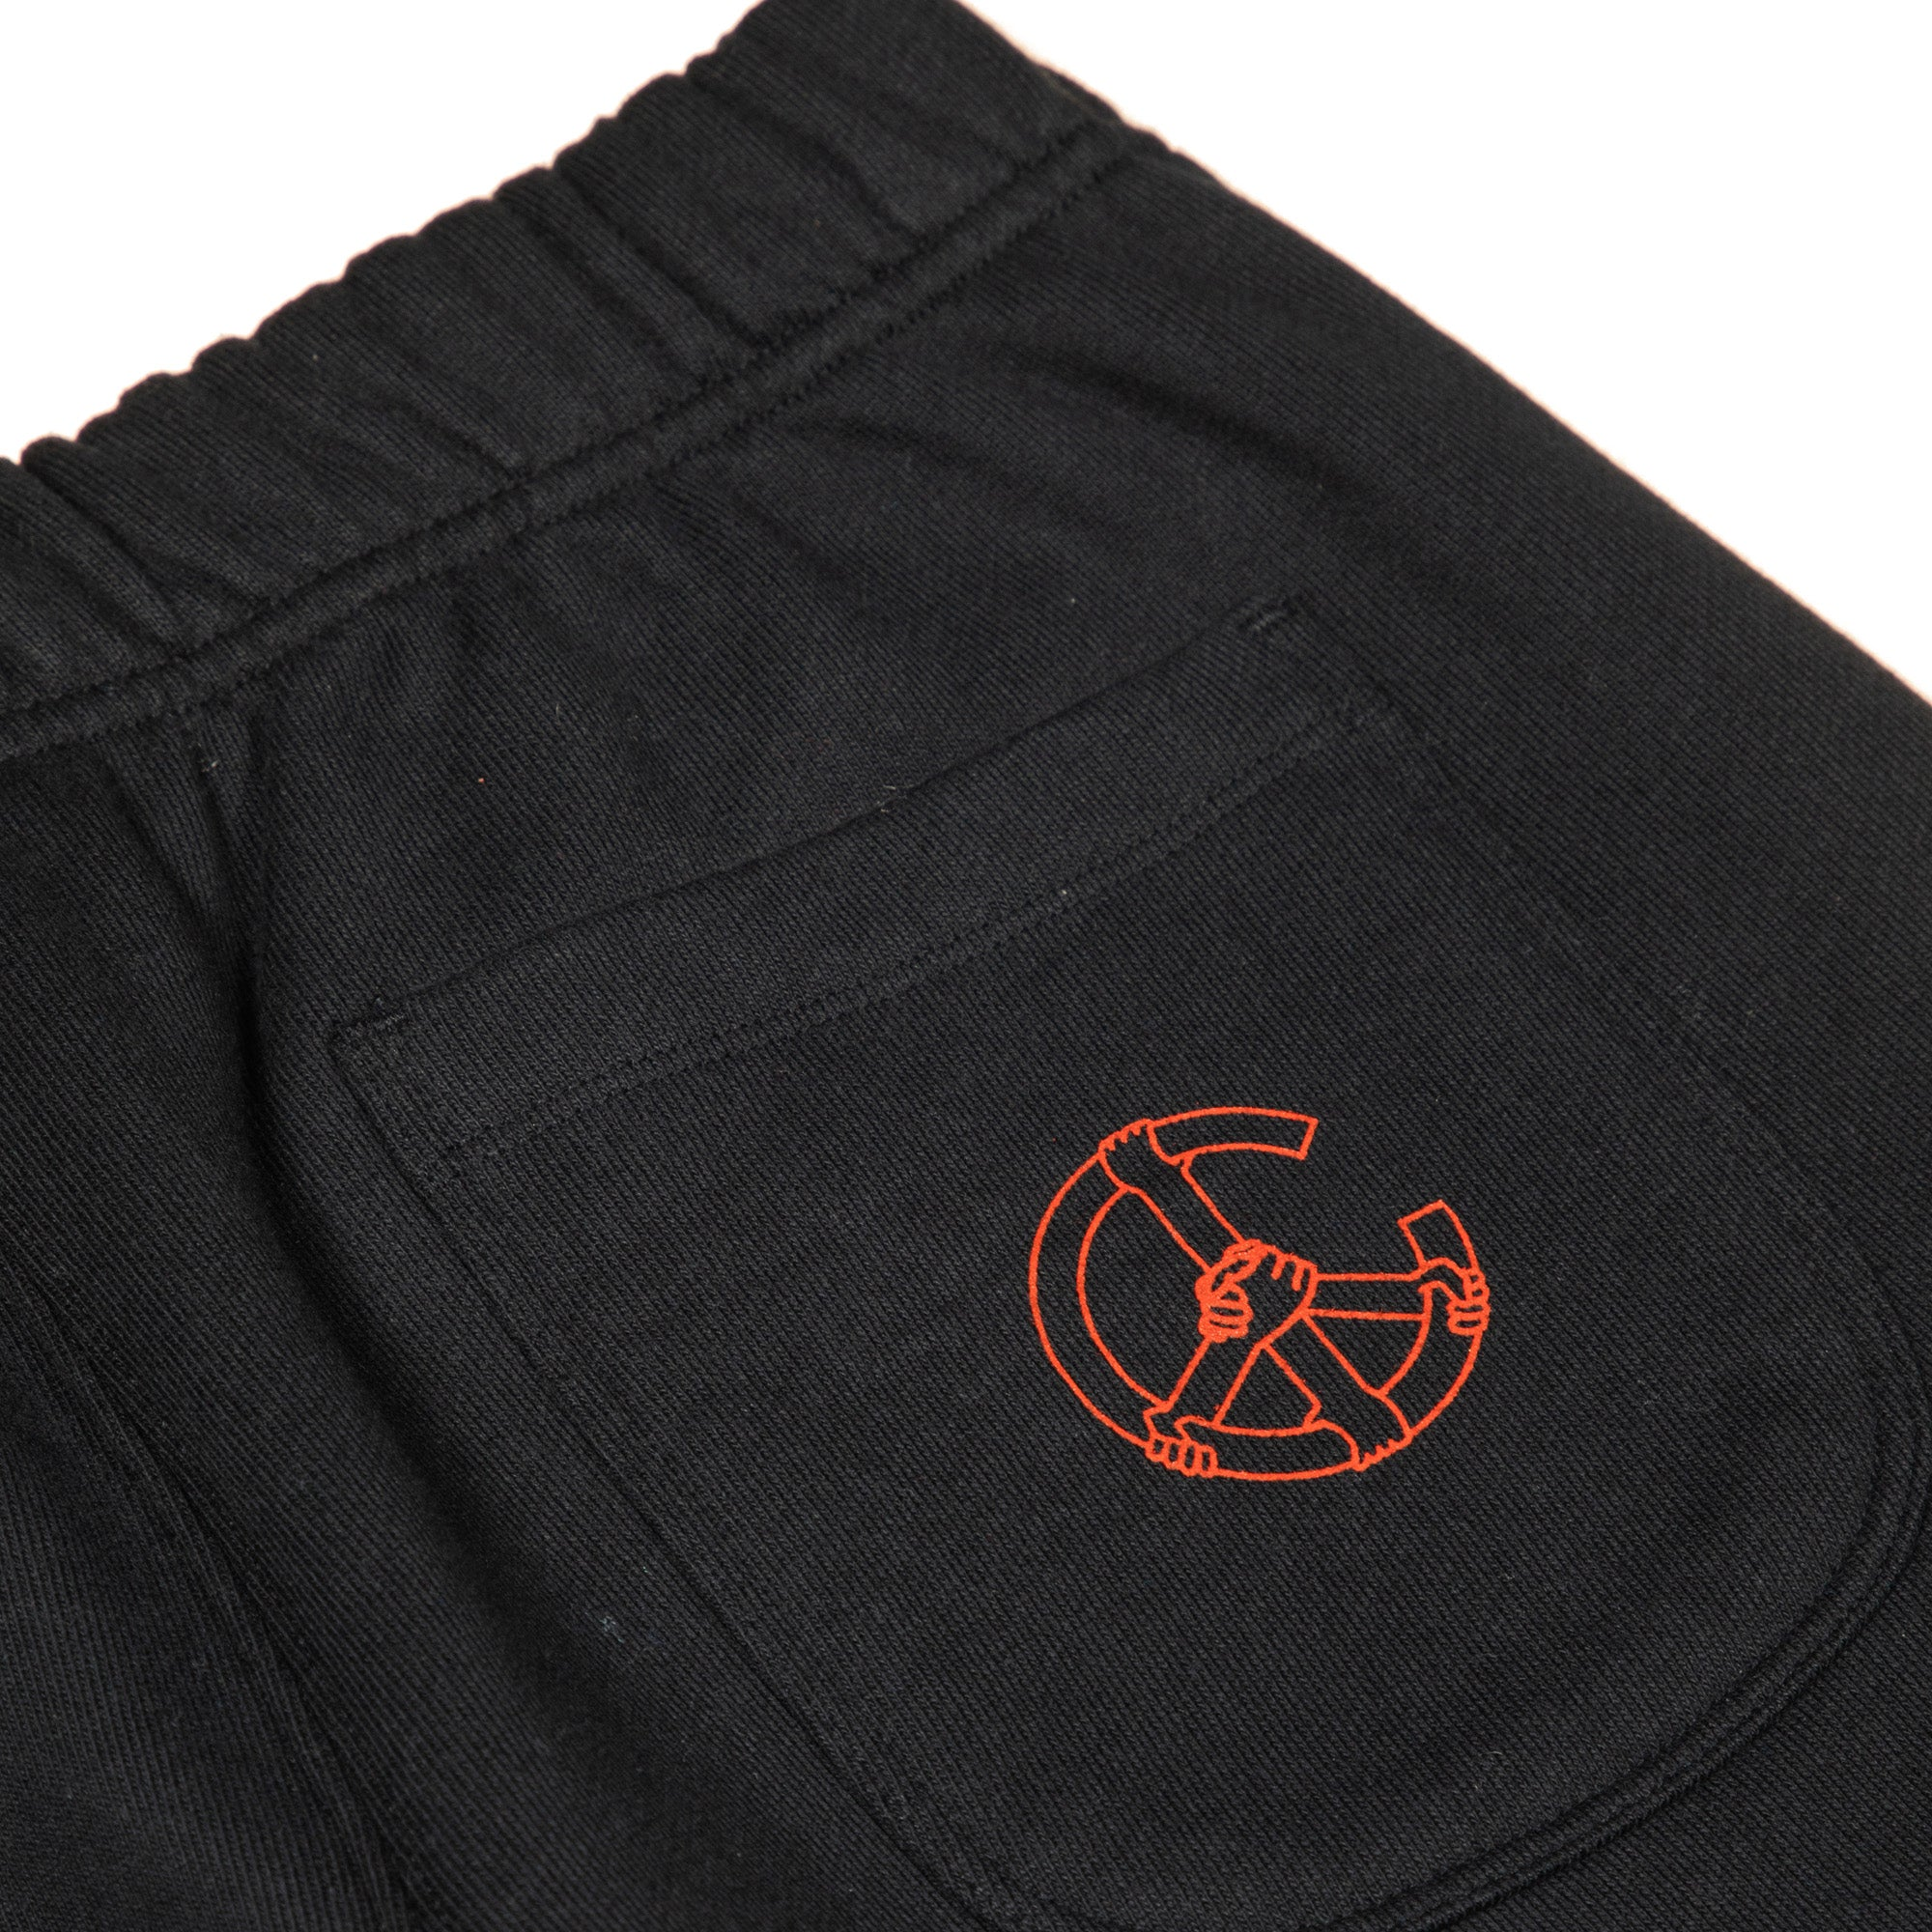 Black Unity Sweatpants